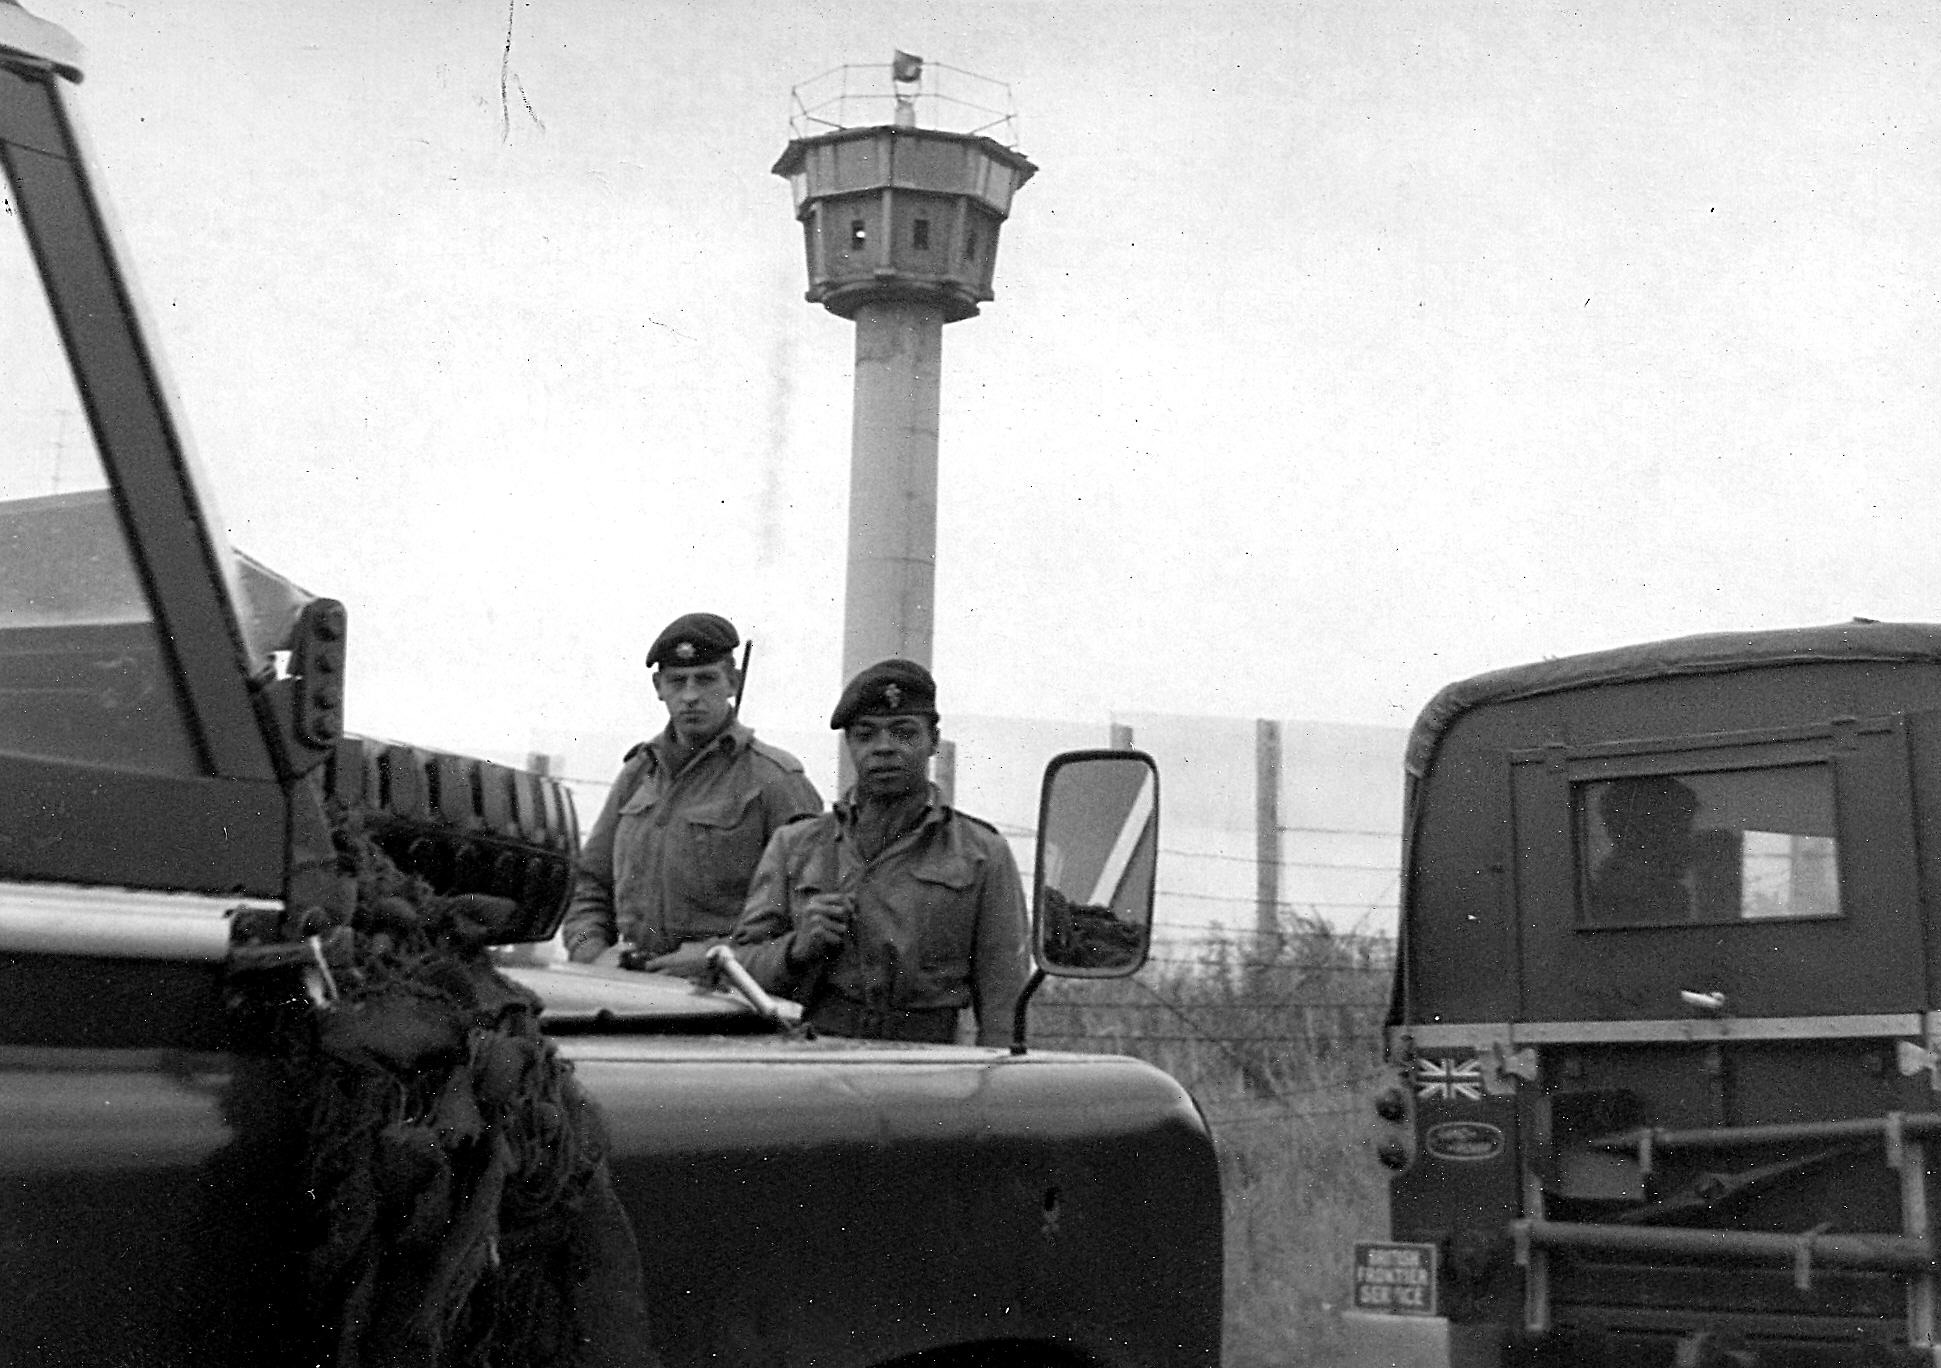 Joint British Army / British Frontier Service patrol on the inner German border between Helmstedt and Wolfsburg.